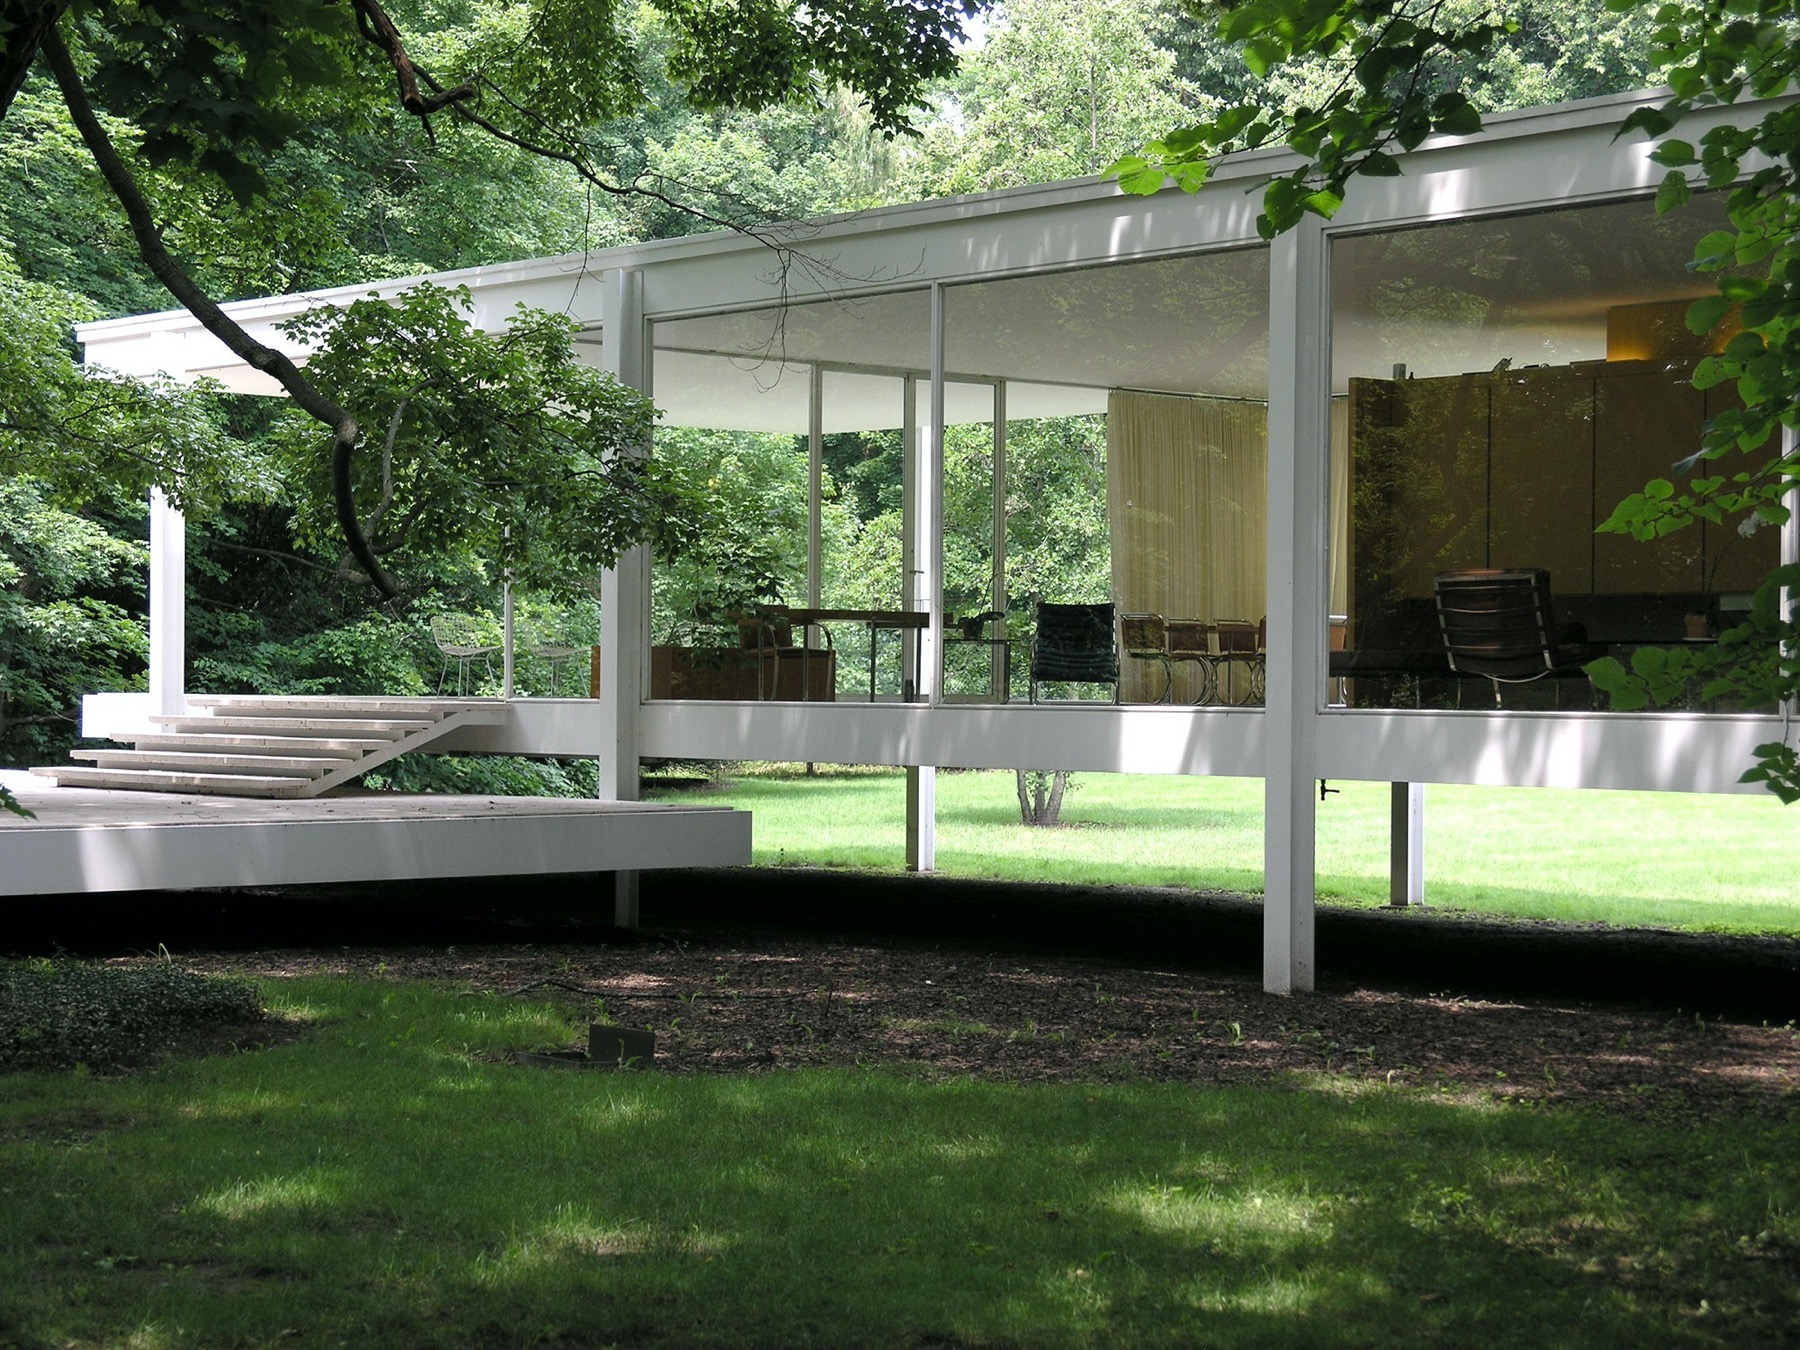 CAC Live: If the Walls of Farnsworth House Could Talk